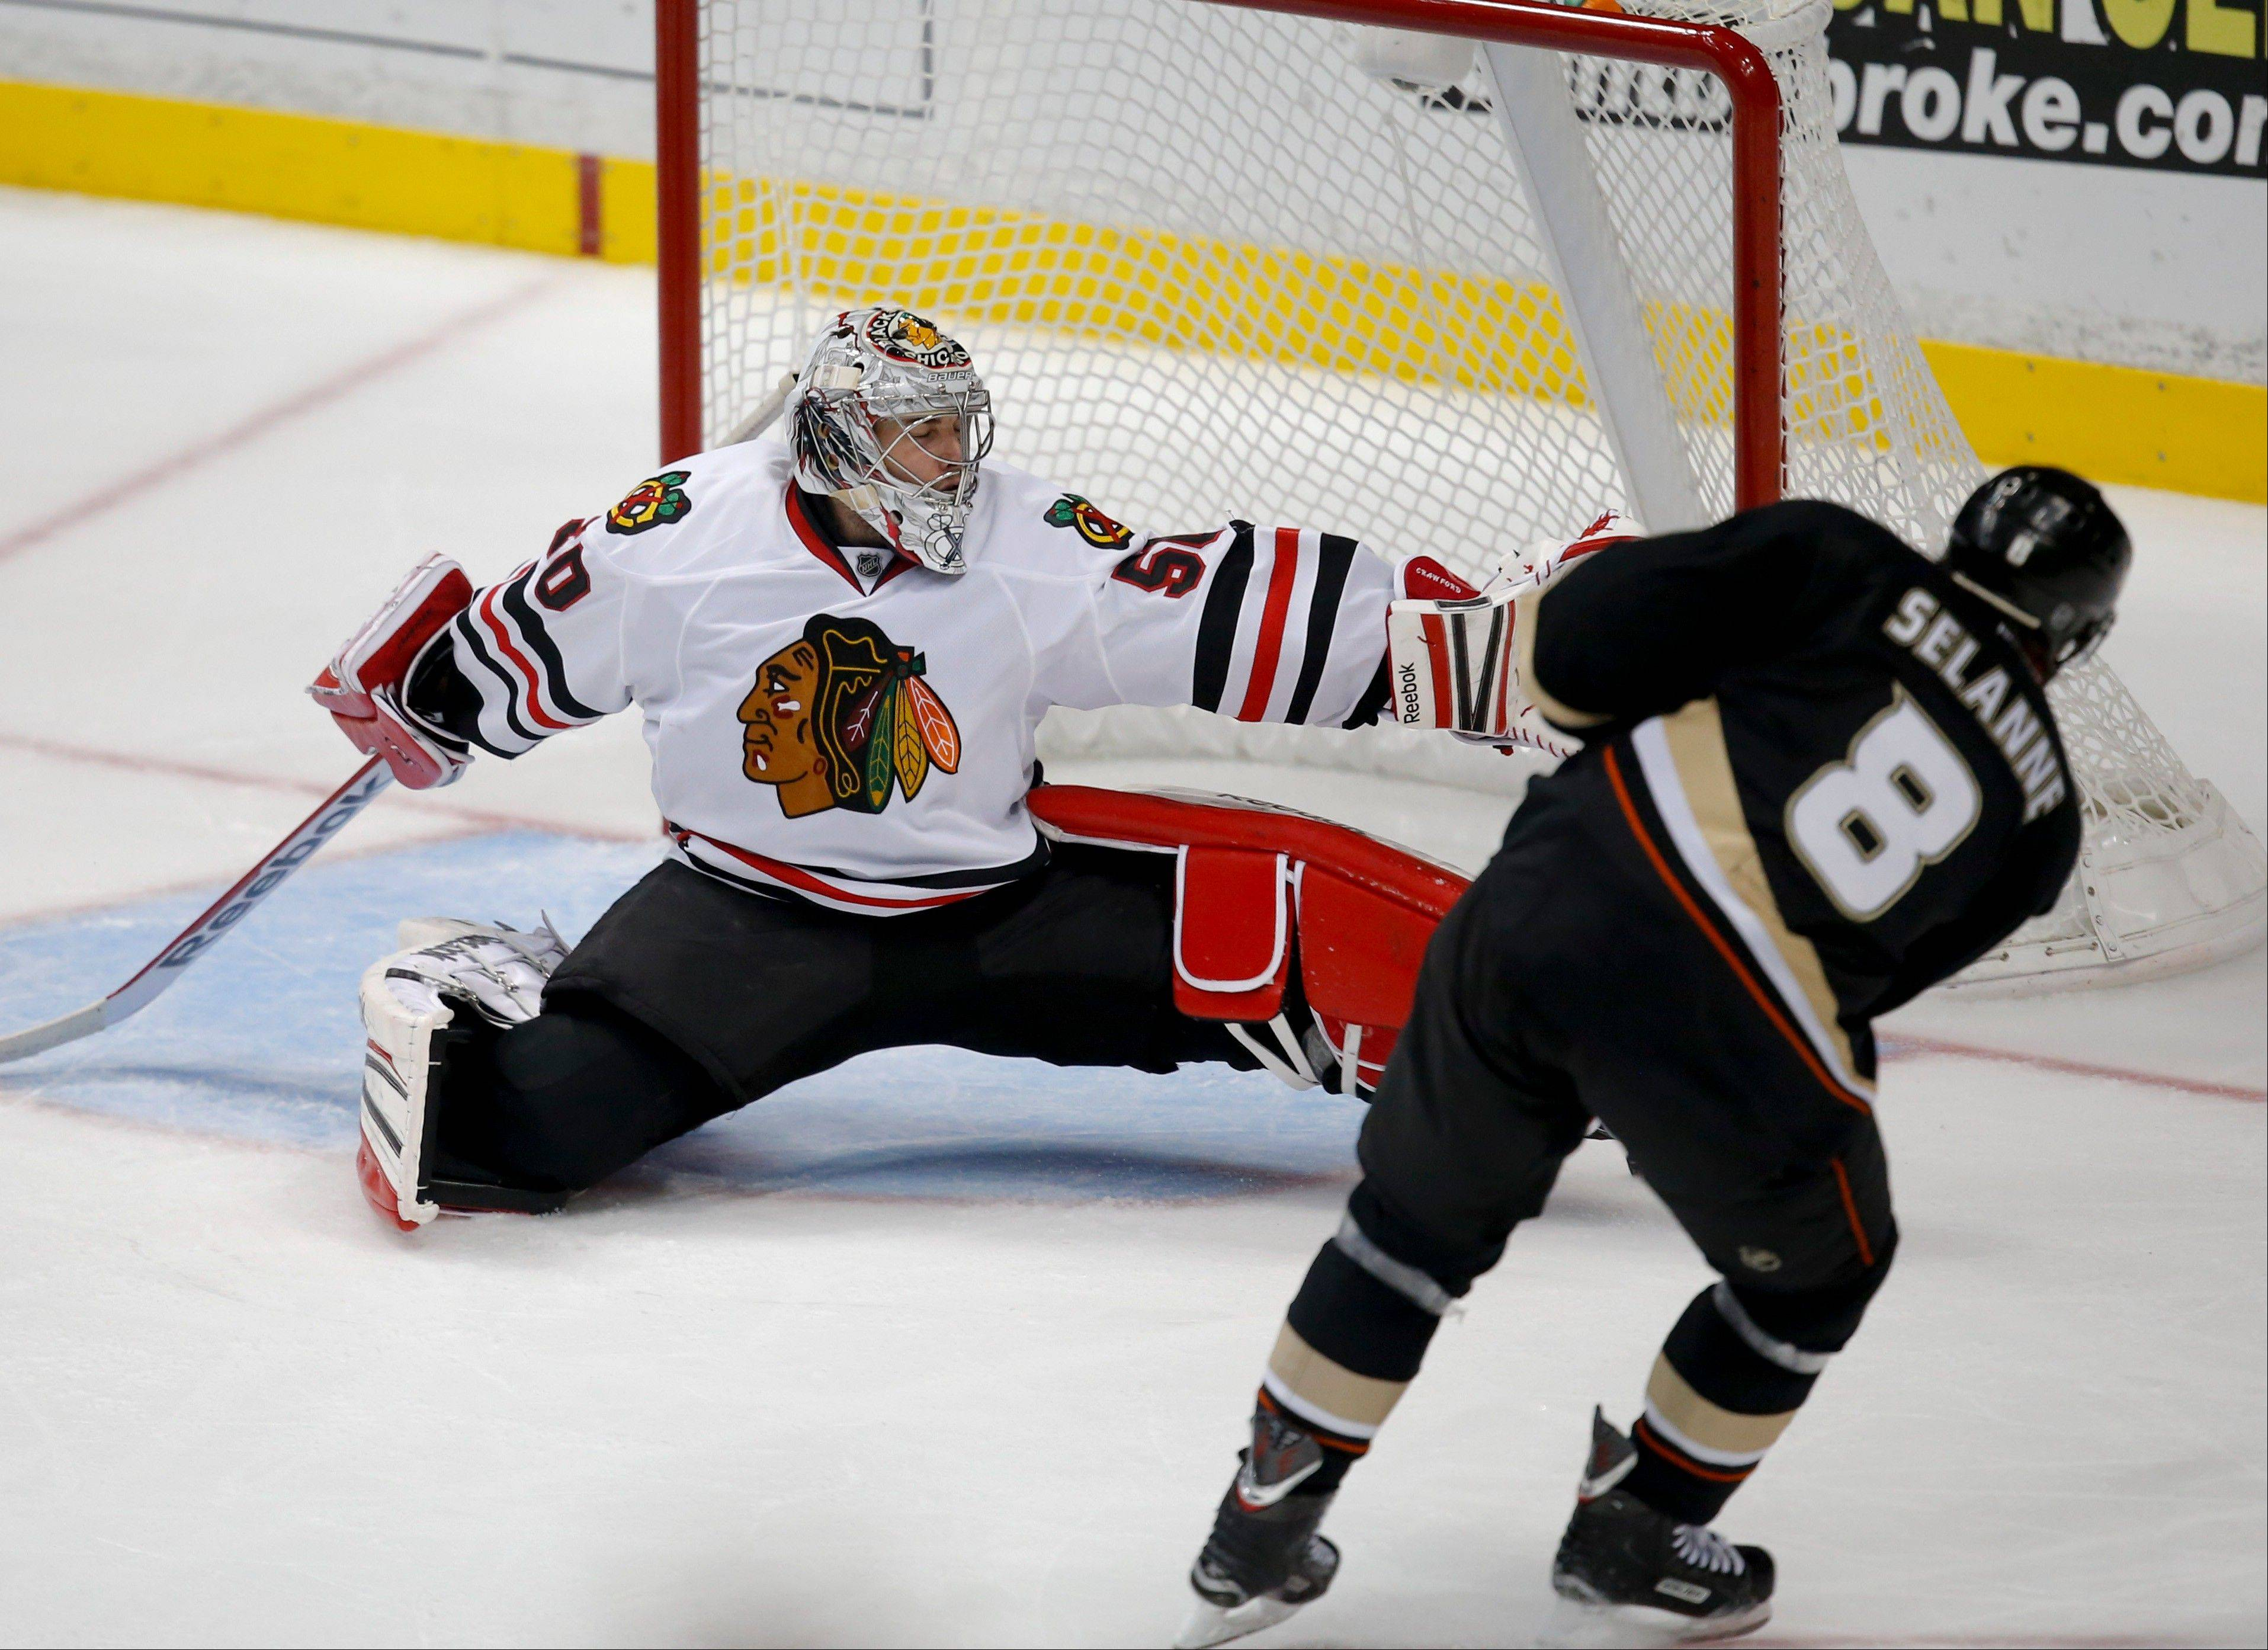 Anaheim Ducks' Teemu Selanne, foreground, of Finland, scores against Chicago Blackhawks goalie Corey Crawford during the third period of an NHL hockey game in Anaheim, Calif., Wednesday, March 20, 2013. The Ducks won 4-2. (AP Photo/Jae C. Hong)